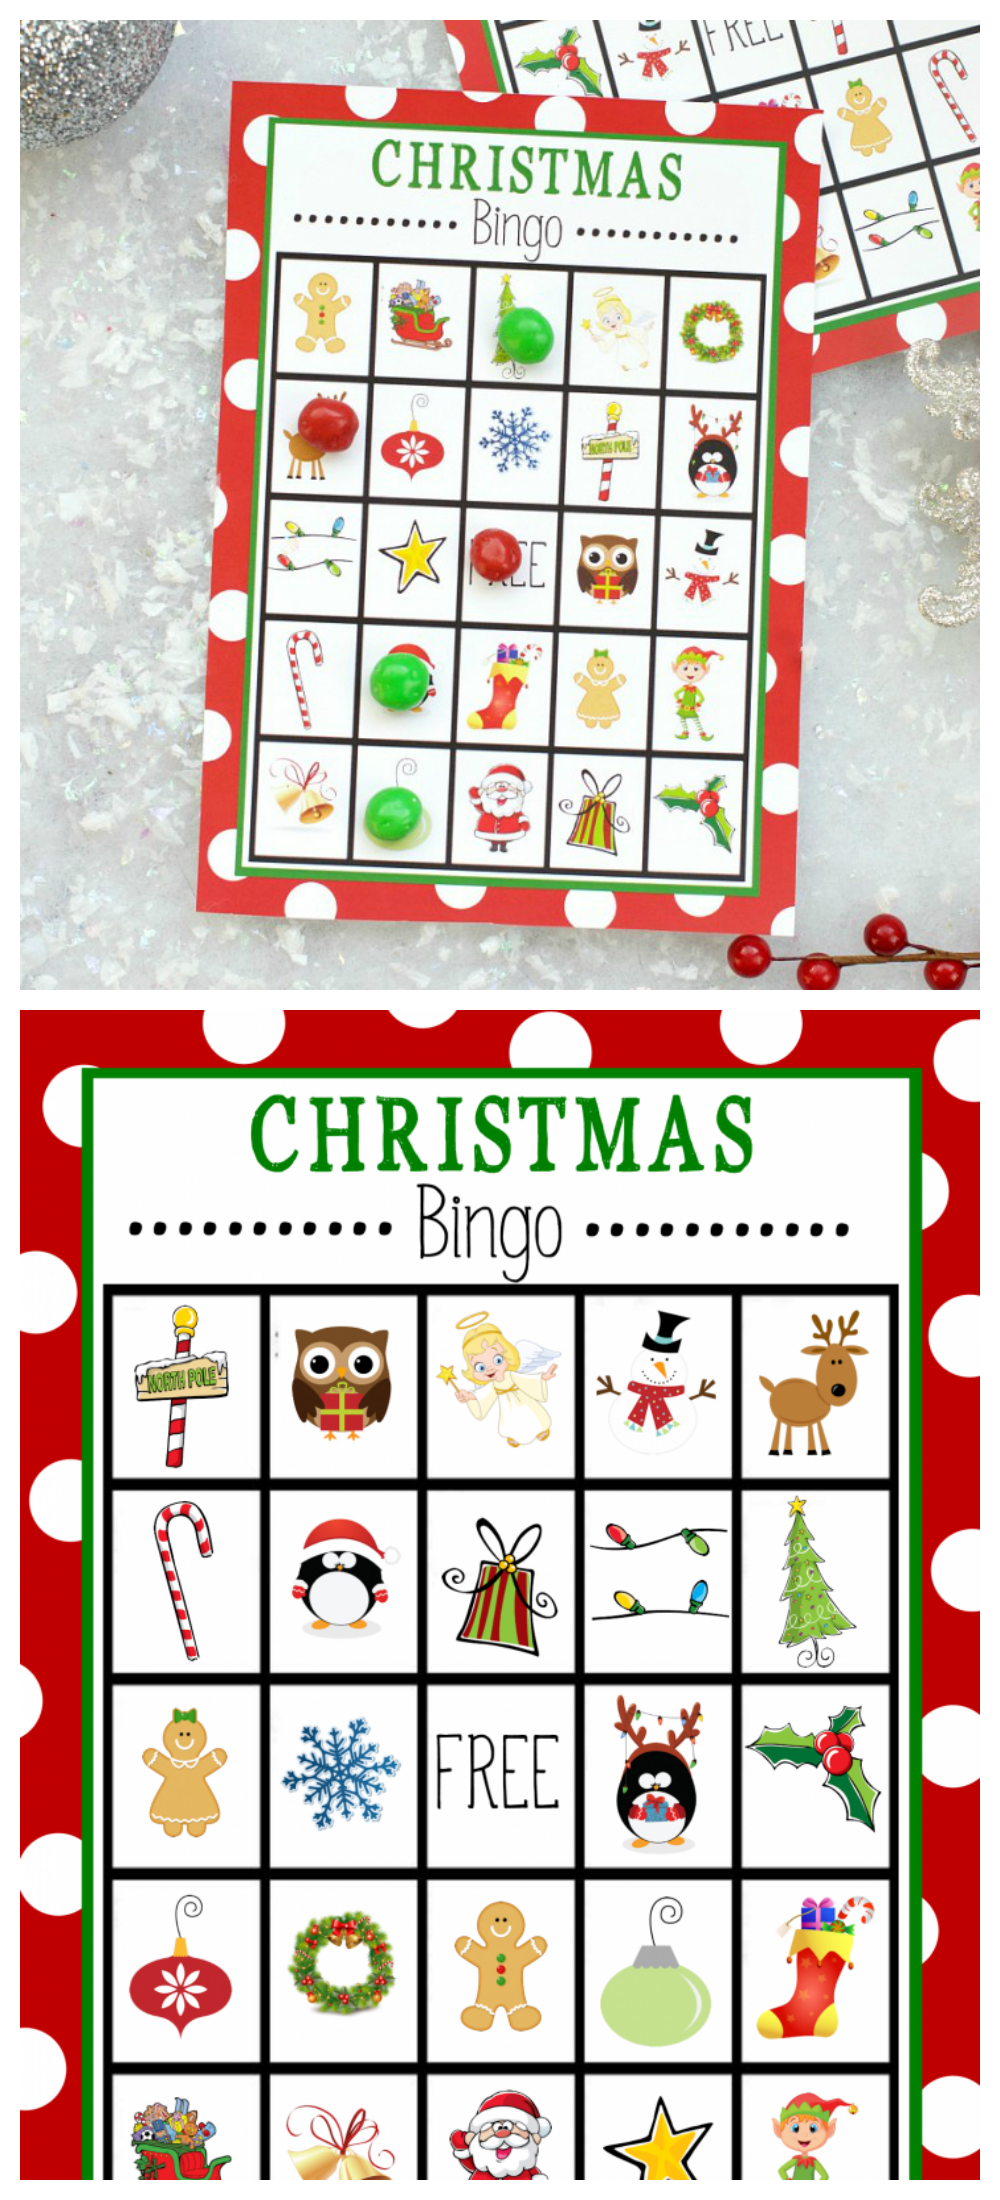 Free Printable Christmas Bingo Game-This Christmas Bingo is perfect to print and play at a holiday party or just to have fun with the kids at Christmas time! #bingo #kids #kidsgames #Christmas #holidays